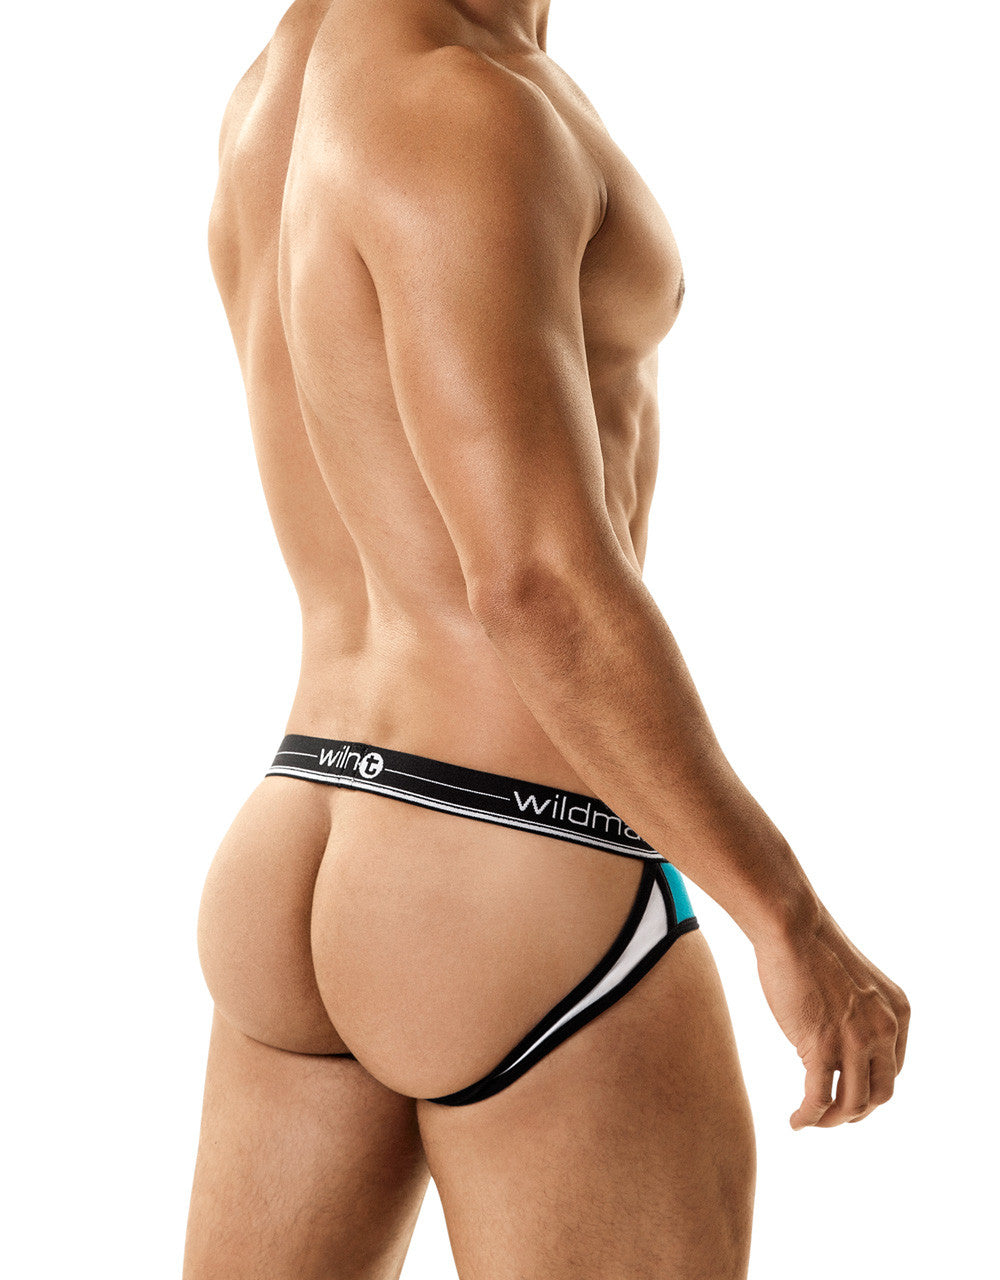 Variety 3 Pack WildmanT Apollo Jock With Cock Ring - Big Penis Underwear, WildmanT - WildmanT